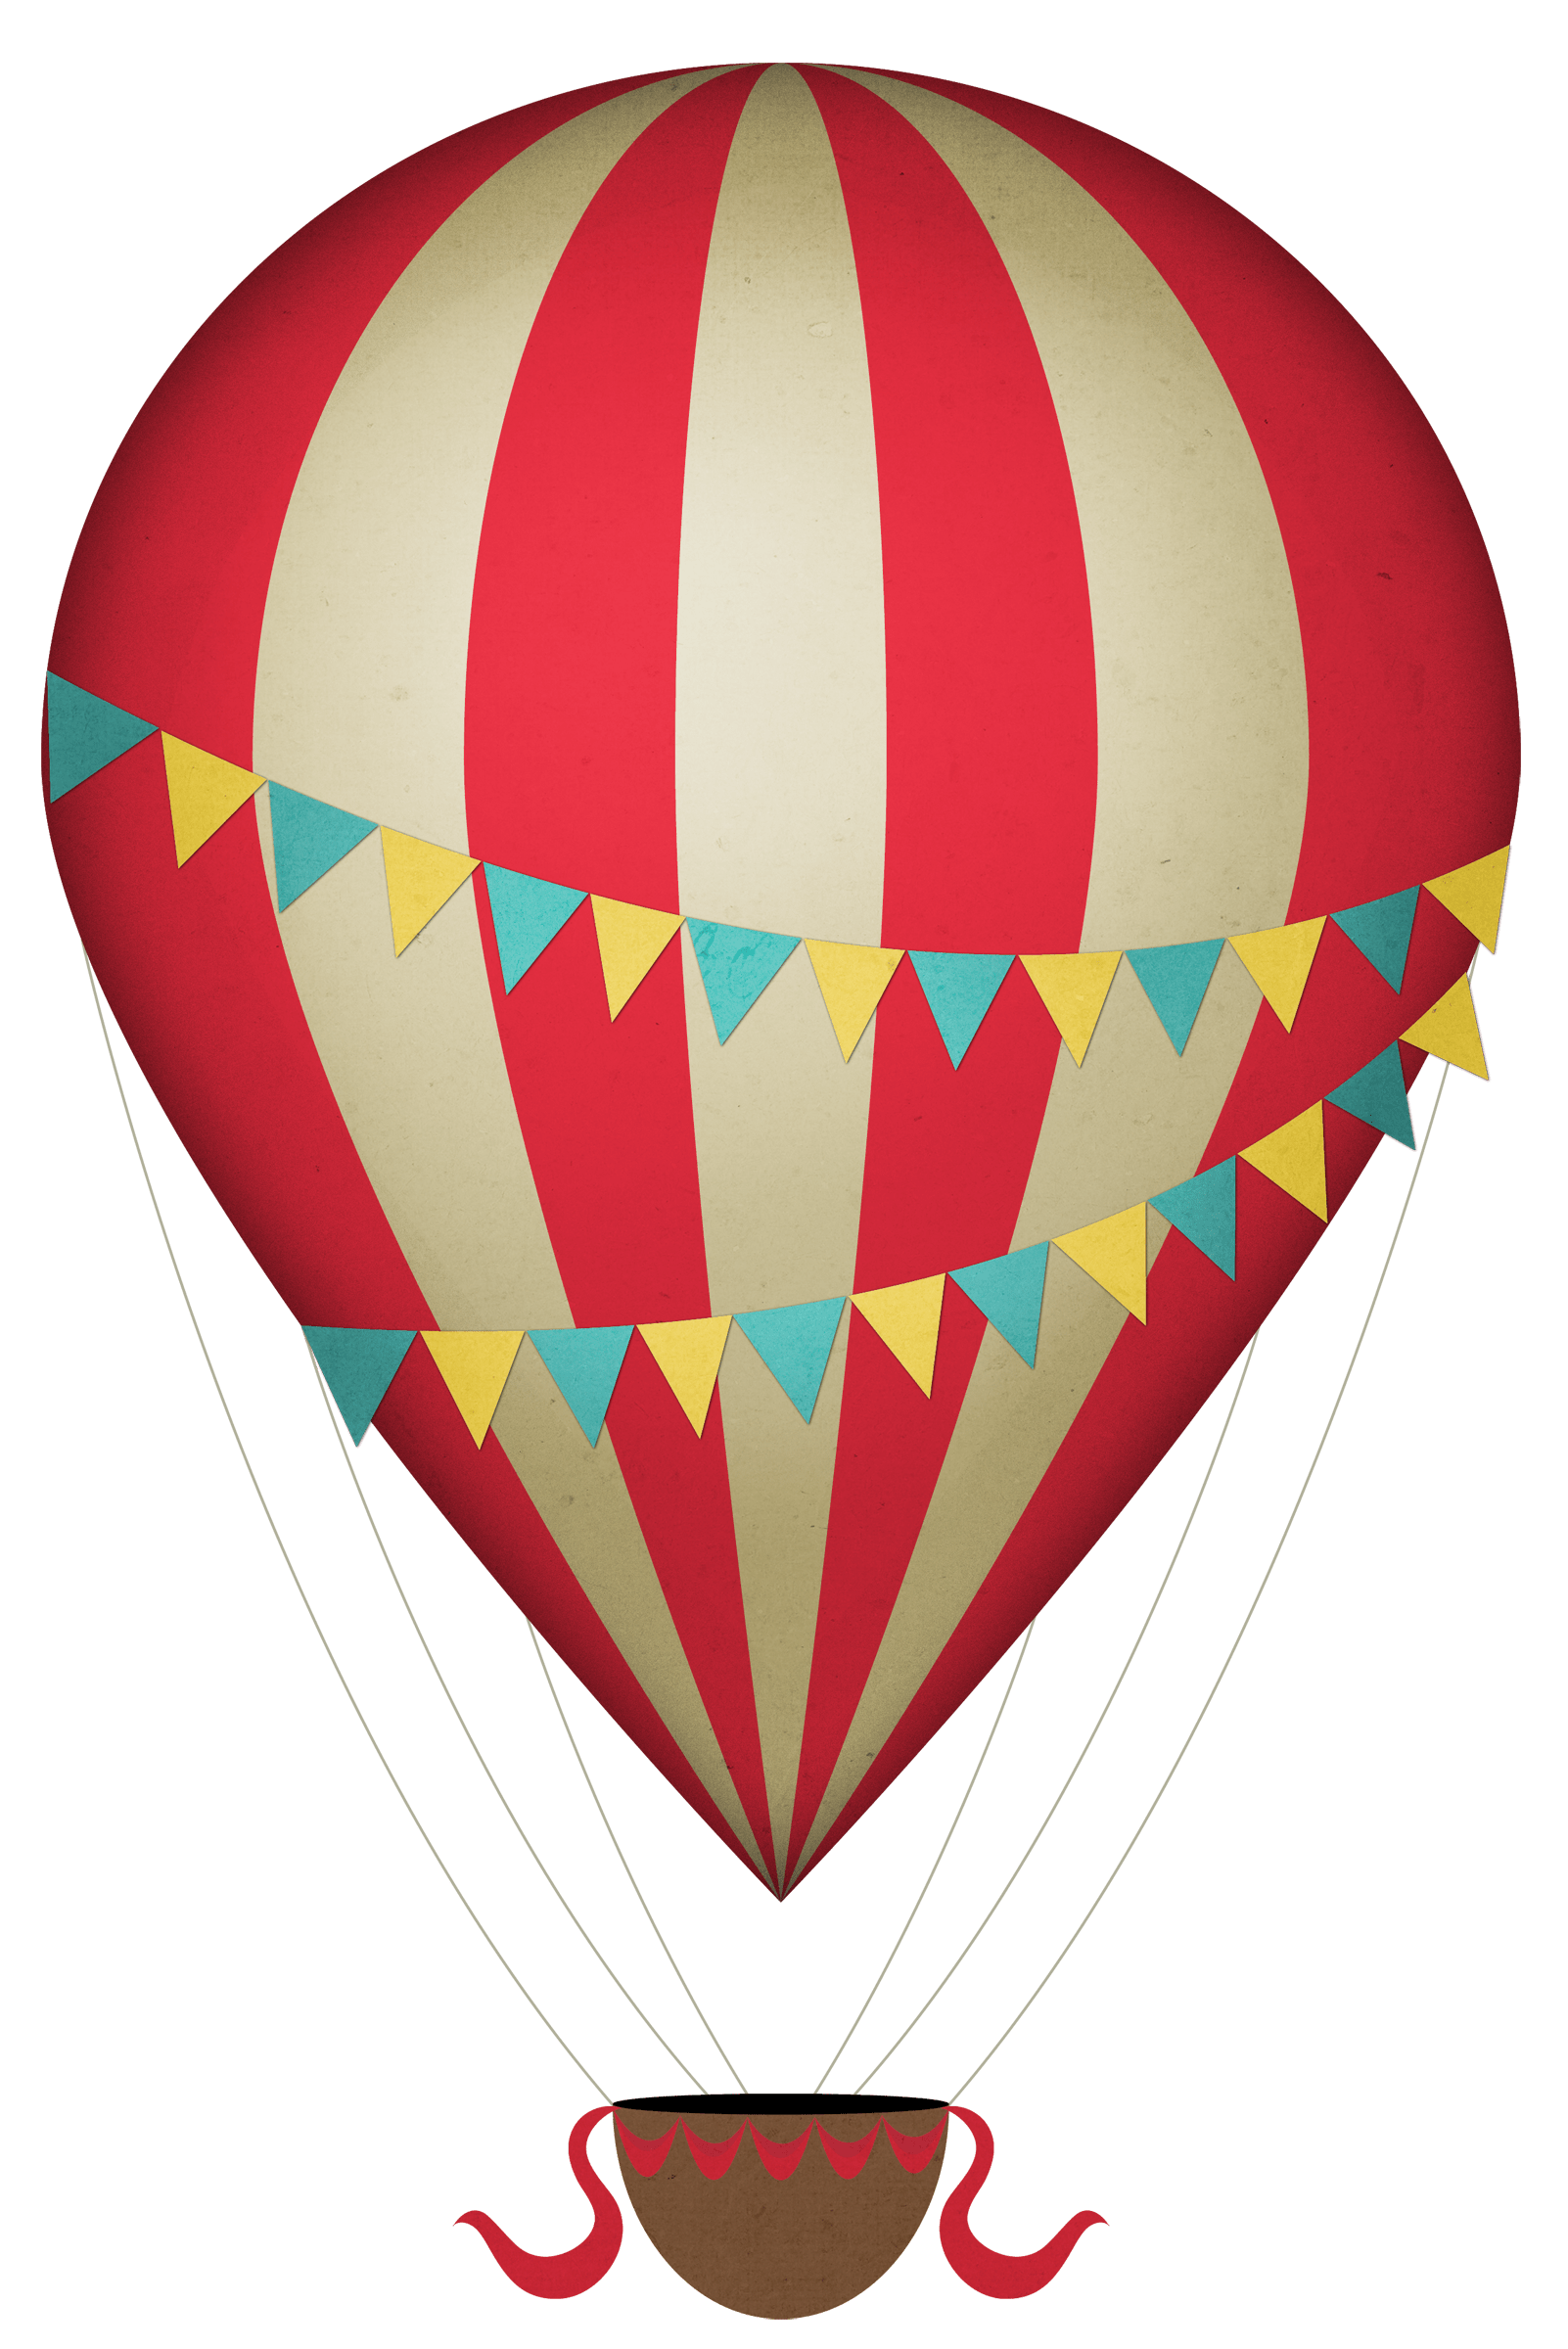 Hot air balloon clipart png. Vintage transparent stickpng download